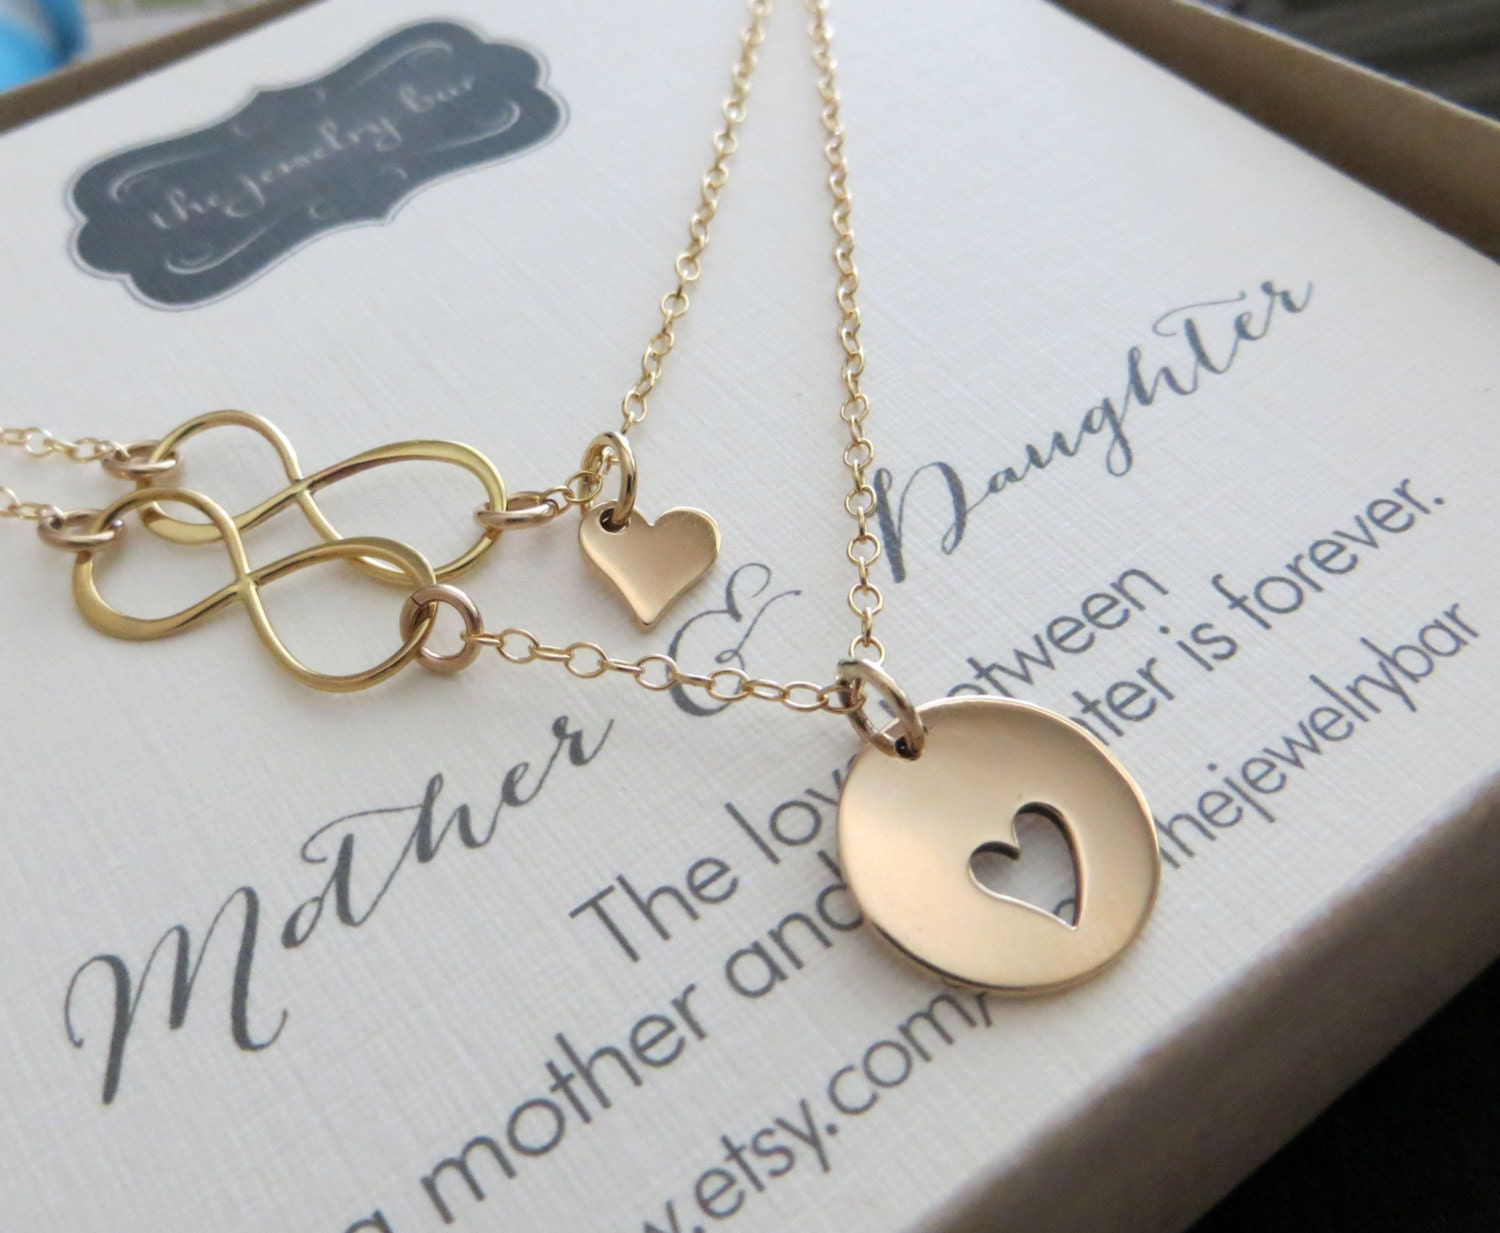 mini pendants double sv heart tag necklaces co pendant daughter women usm to mother tiffany jewelry necklace return for infinity op